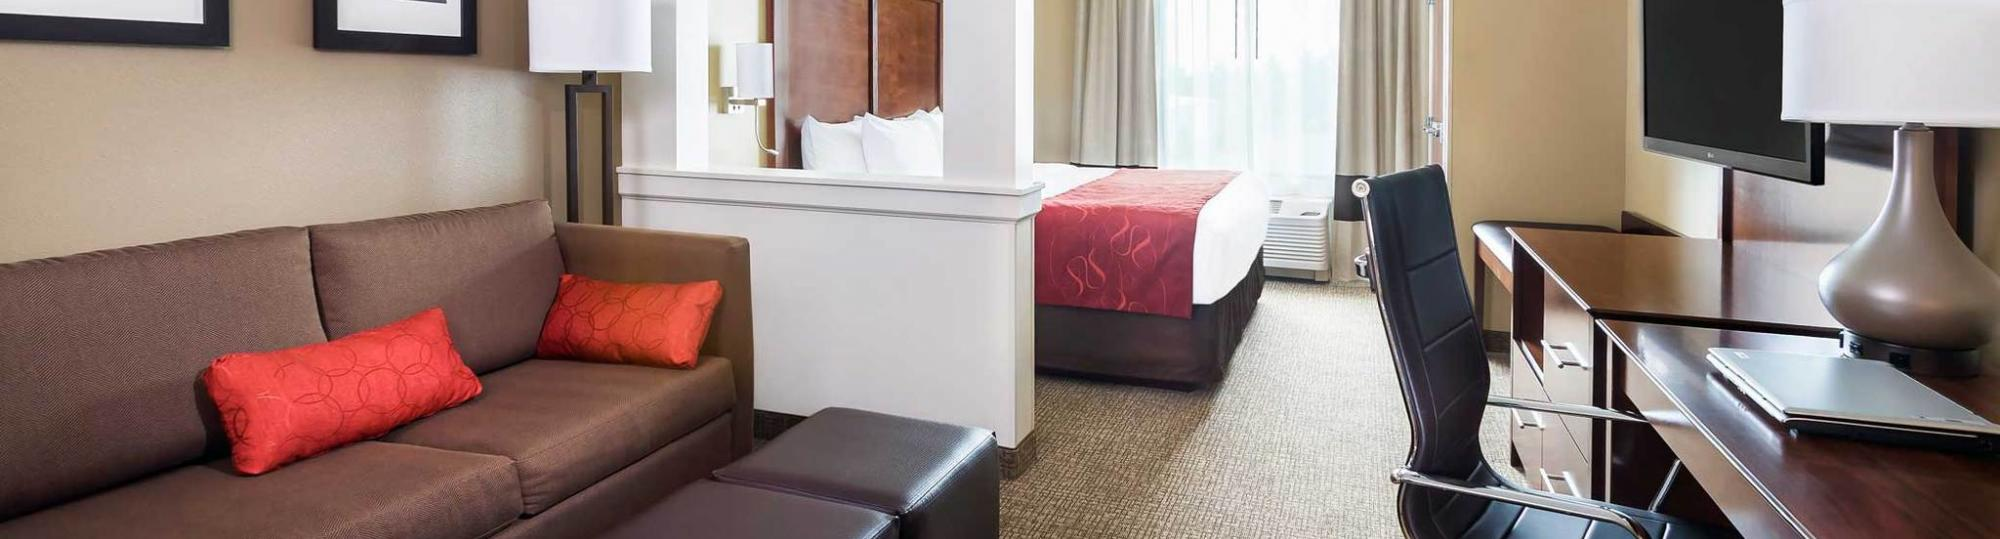 Comfort Suites Military Verification | Veterans Advantage